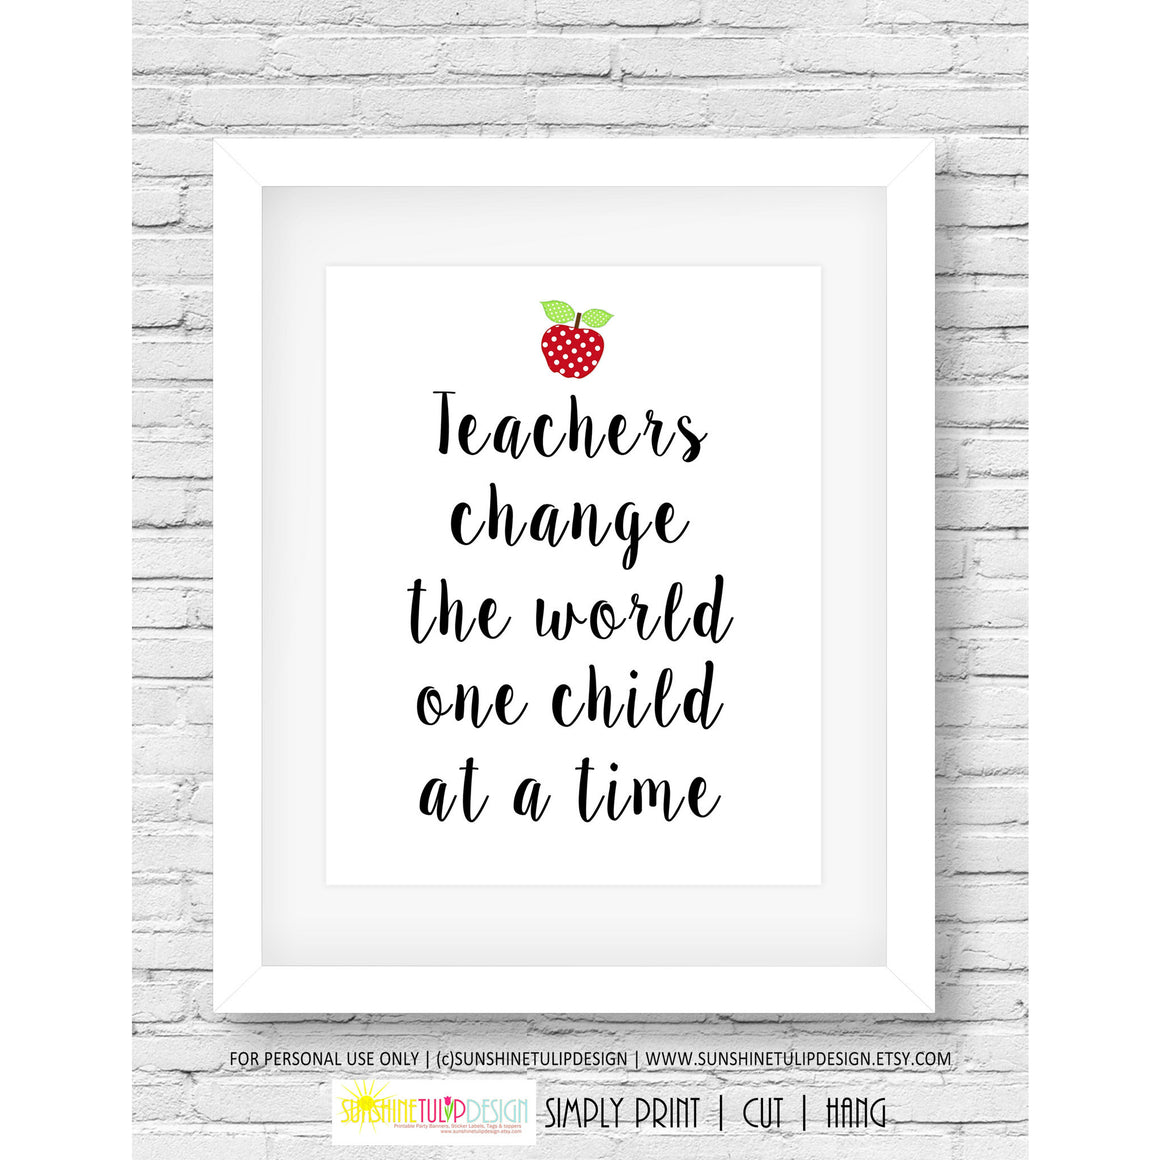 Printable Teacher Appreciation Wall print, Teachers Change the World Decor Print Art for Classroom or Home - Sunshinetulipdesign - 1